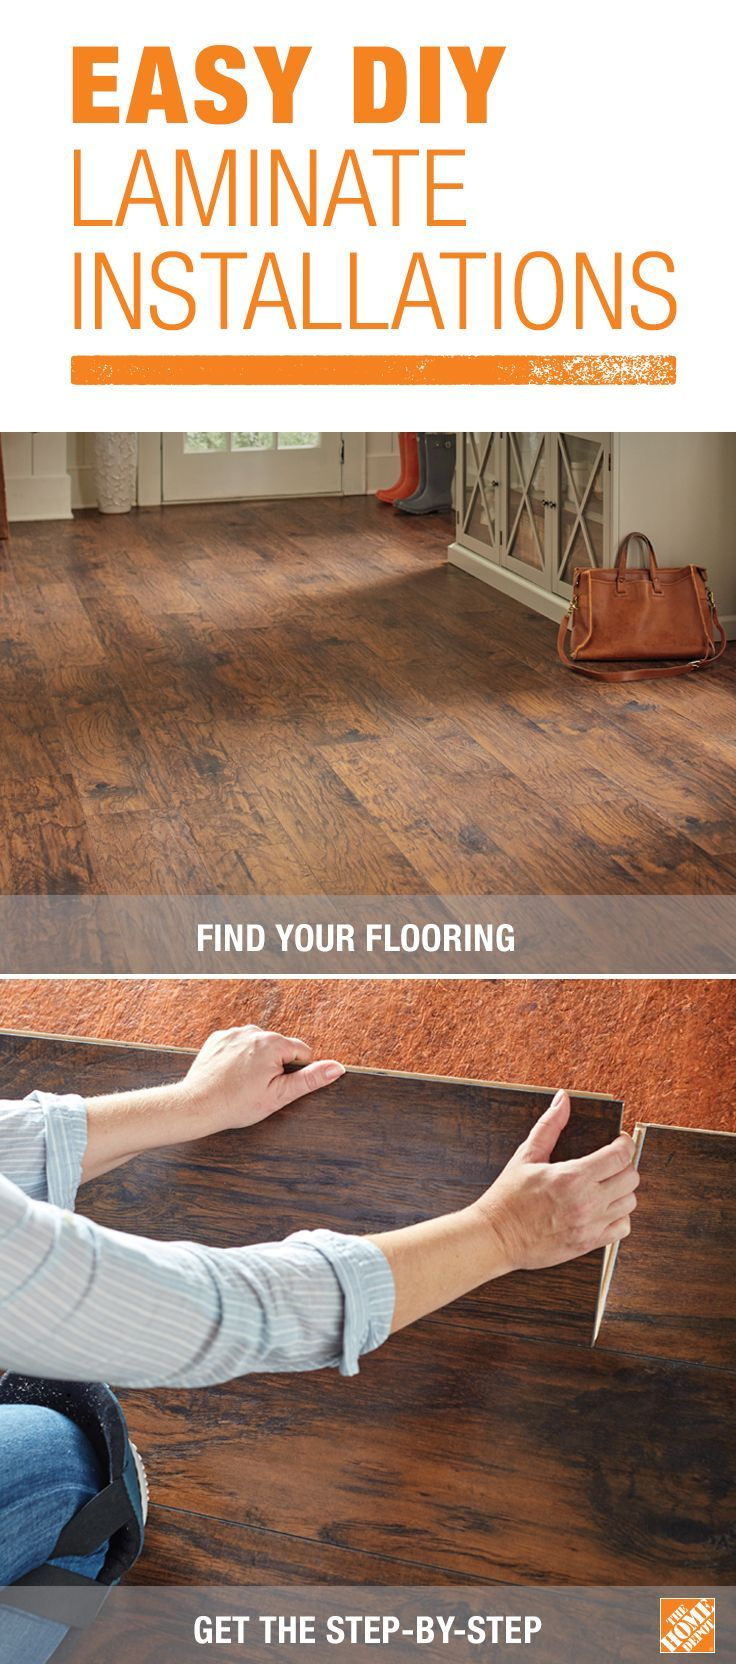 Most diyers can install an entire room of laminate flooring in one most diyers can install an entire room of laminate flooring in one day most laminate solutioingenieria Gallery